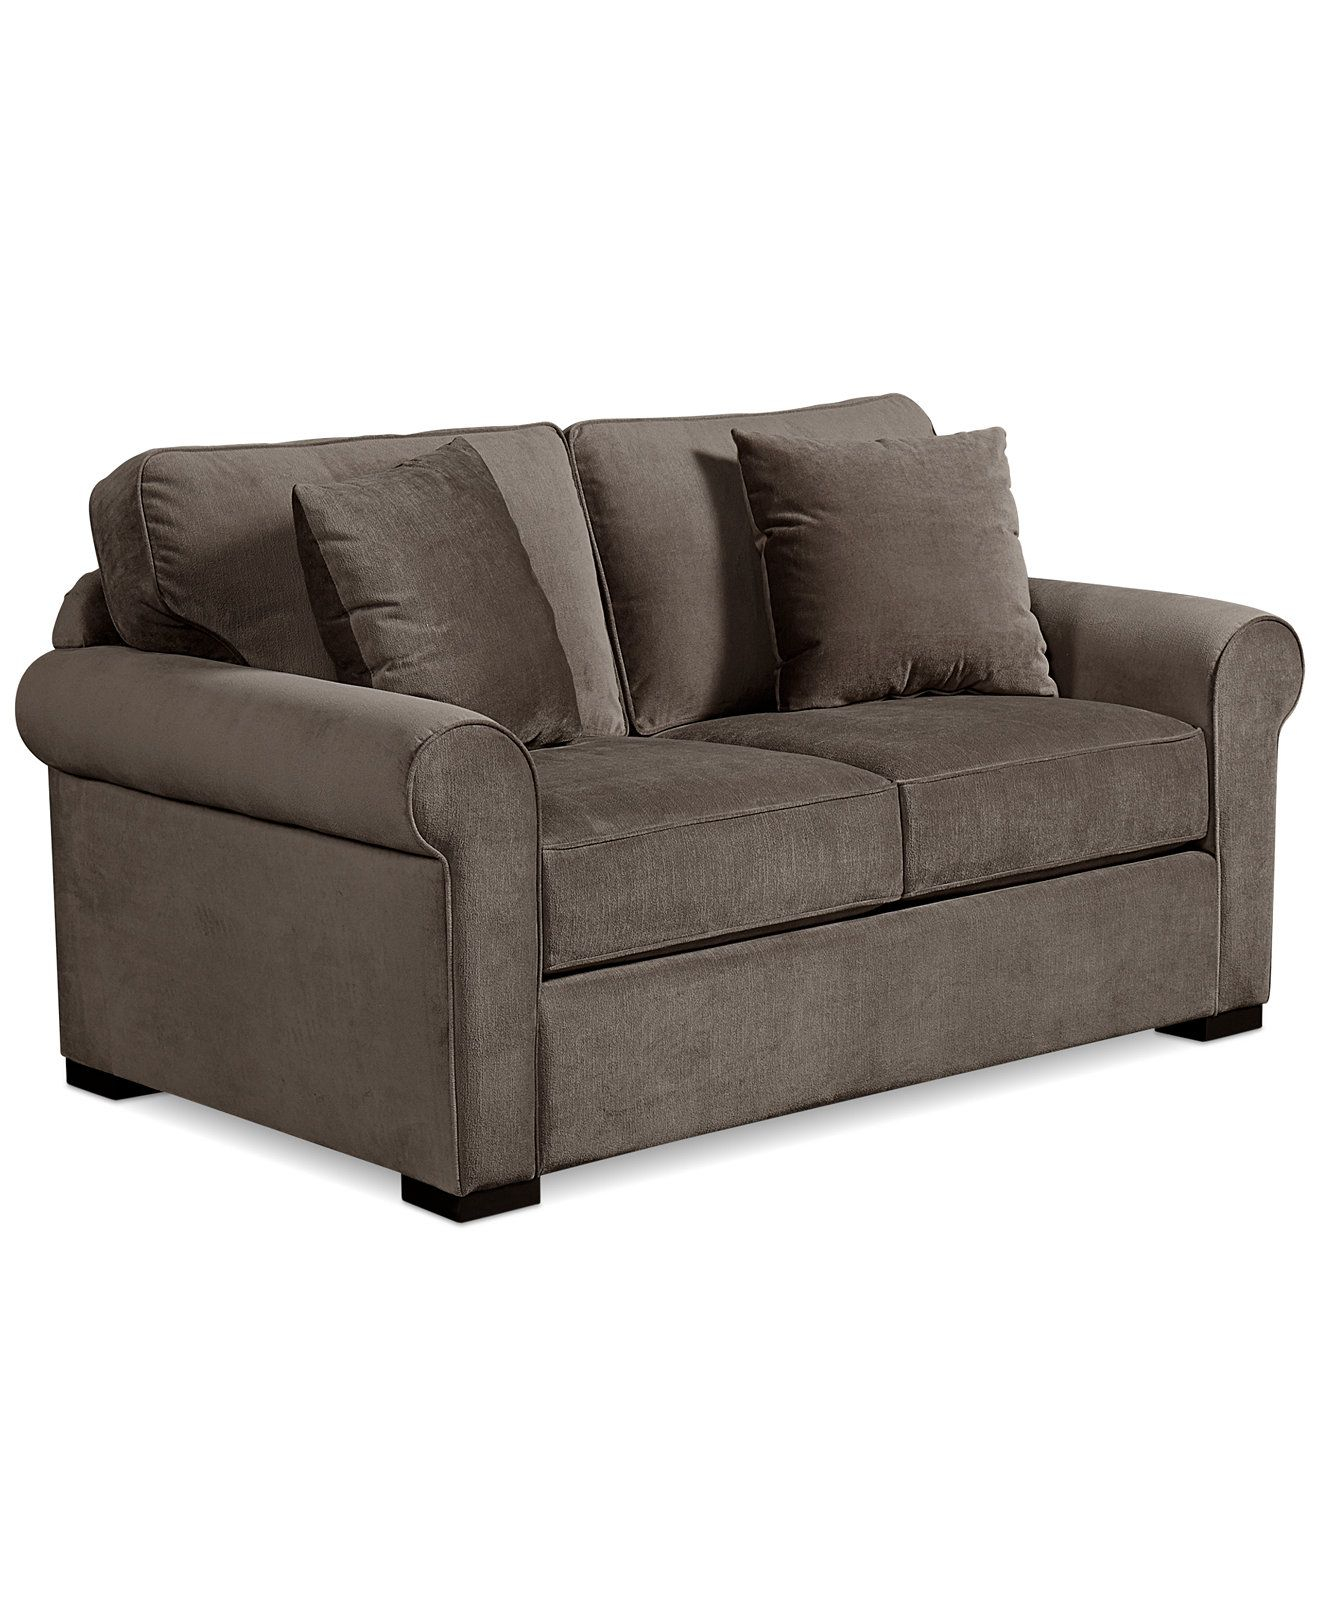 Remo Ii Fabric Loveseat Couches Sofas Furniture in dimensions 1320 X 1616